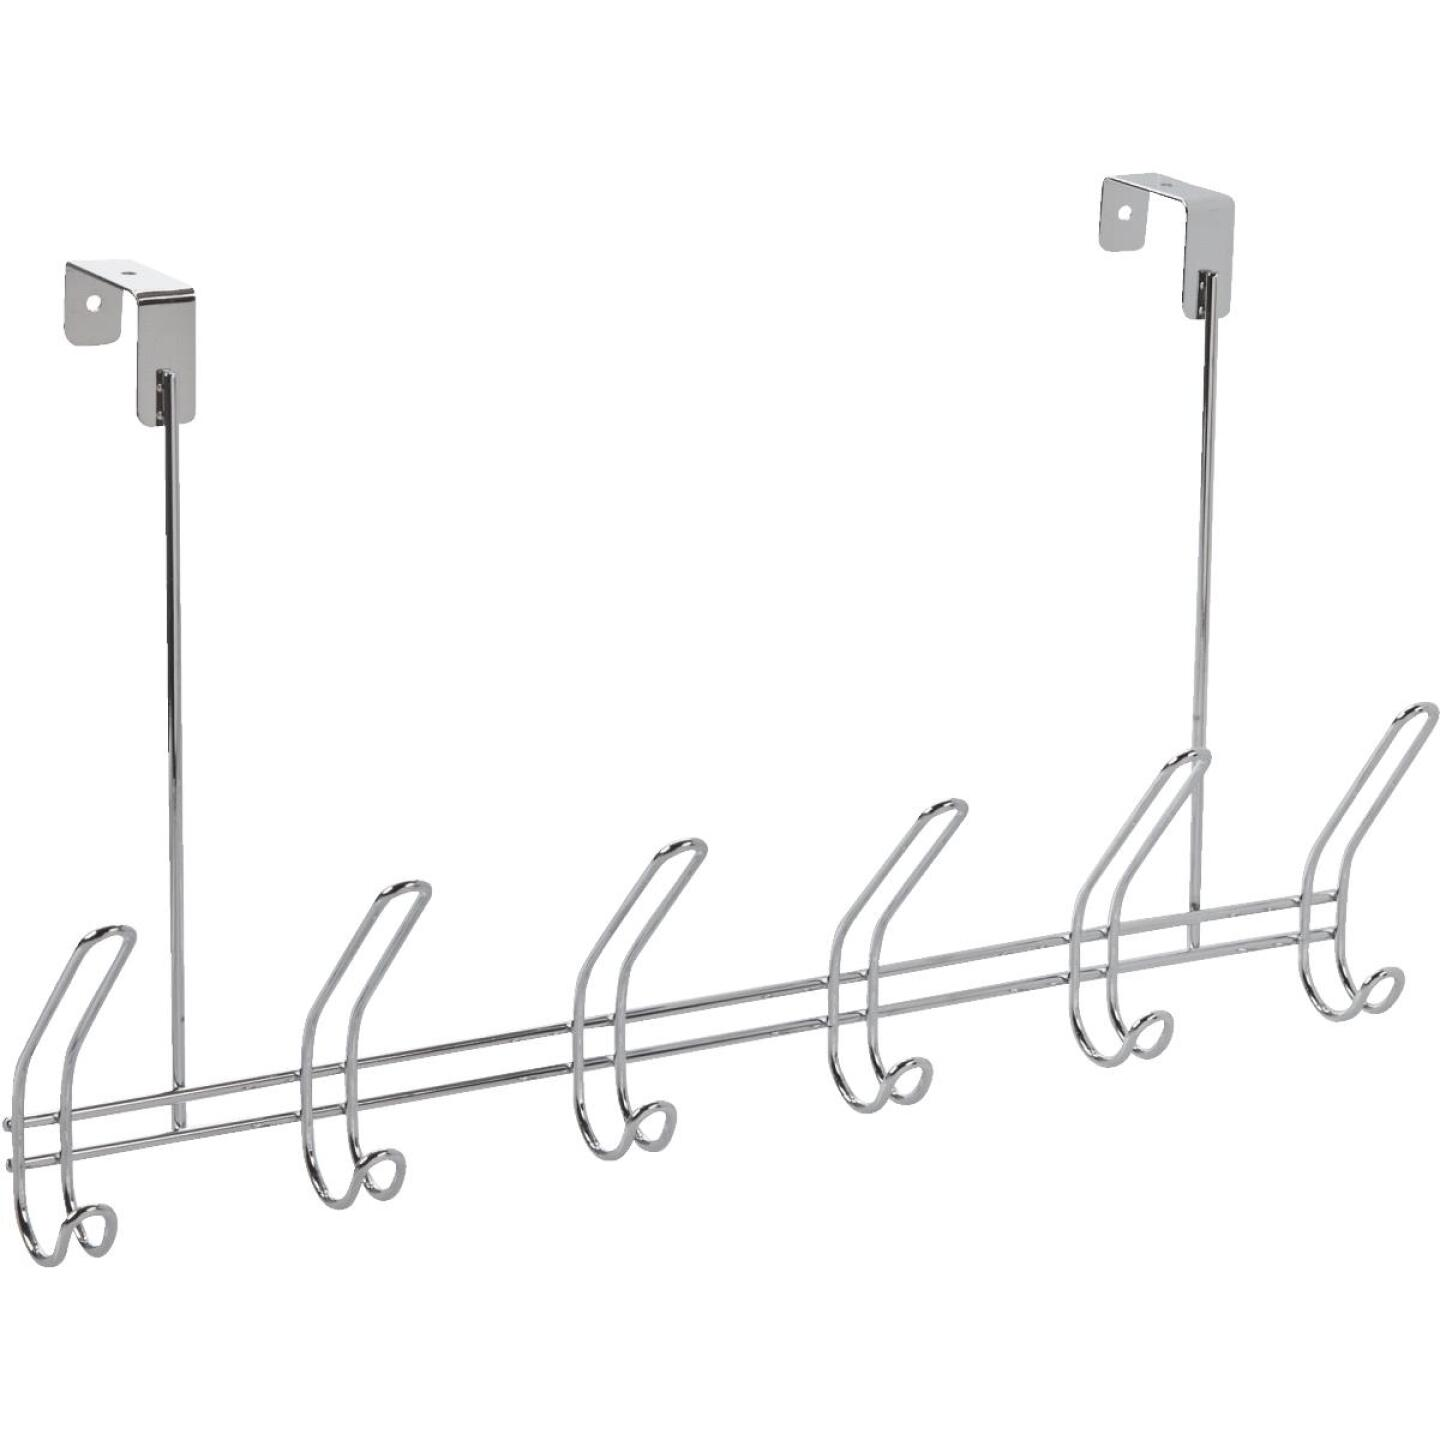 InterDesign Classico Over-The-Door Chrome 6-Hook Rail Image 1